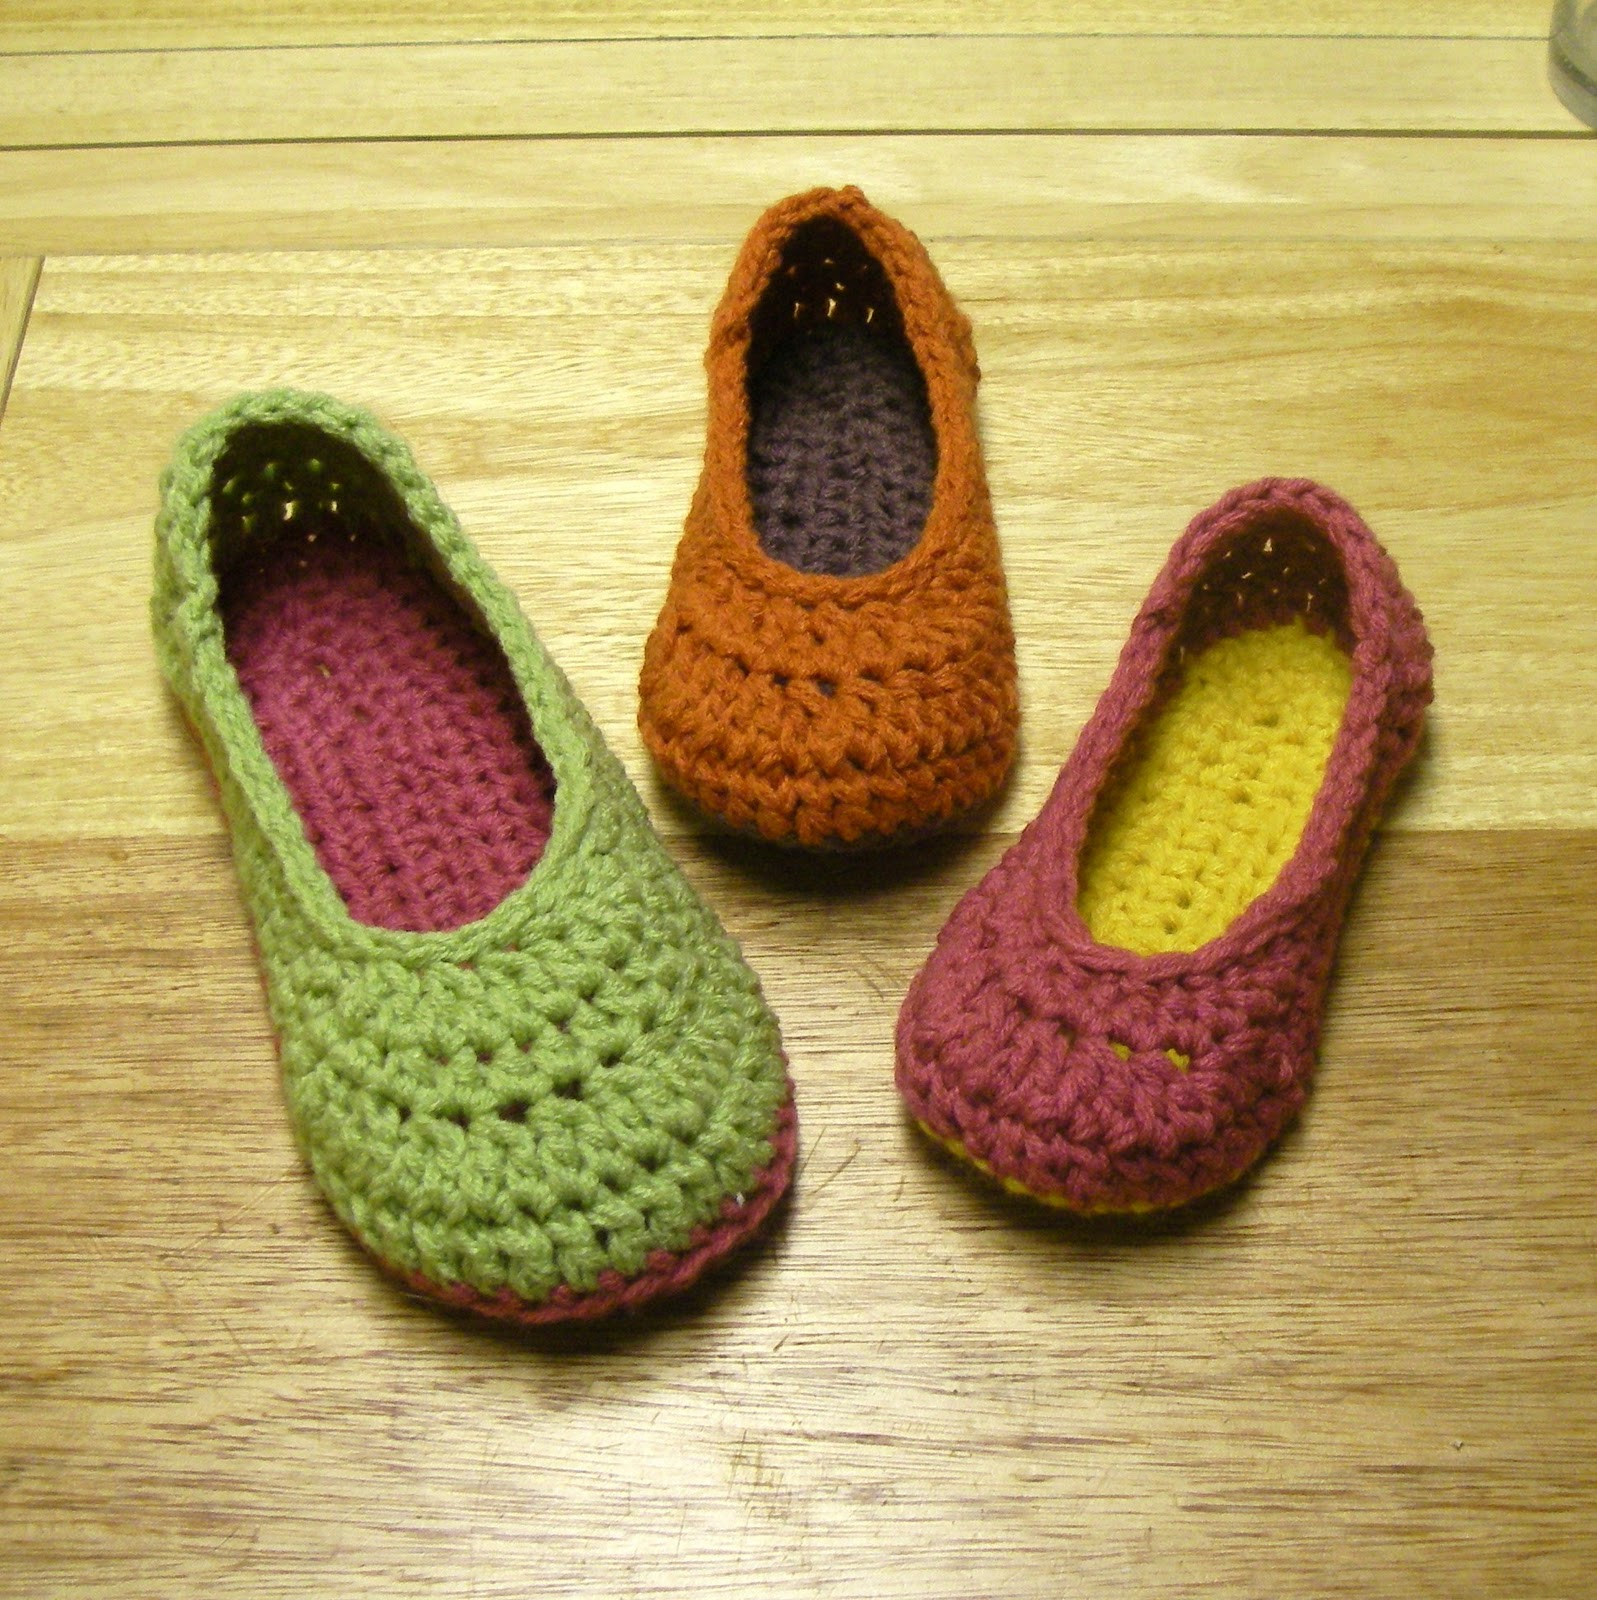 Free Crochet Patterns Booties For Adults : Crochet For Free: Oma House Slippers (Adult Female)